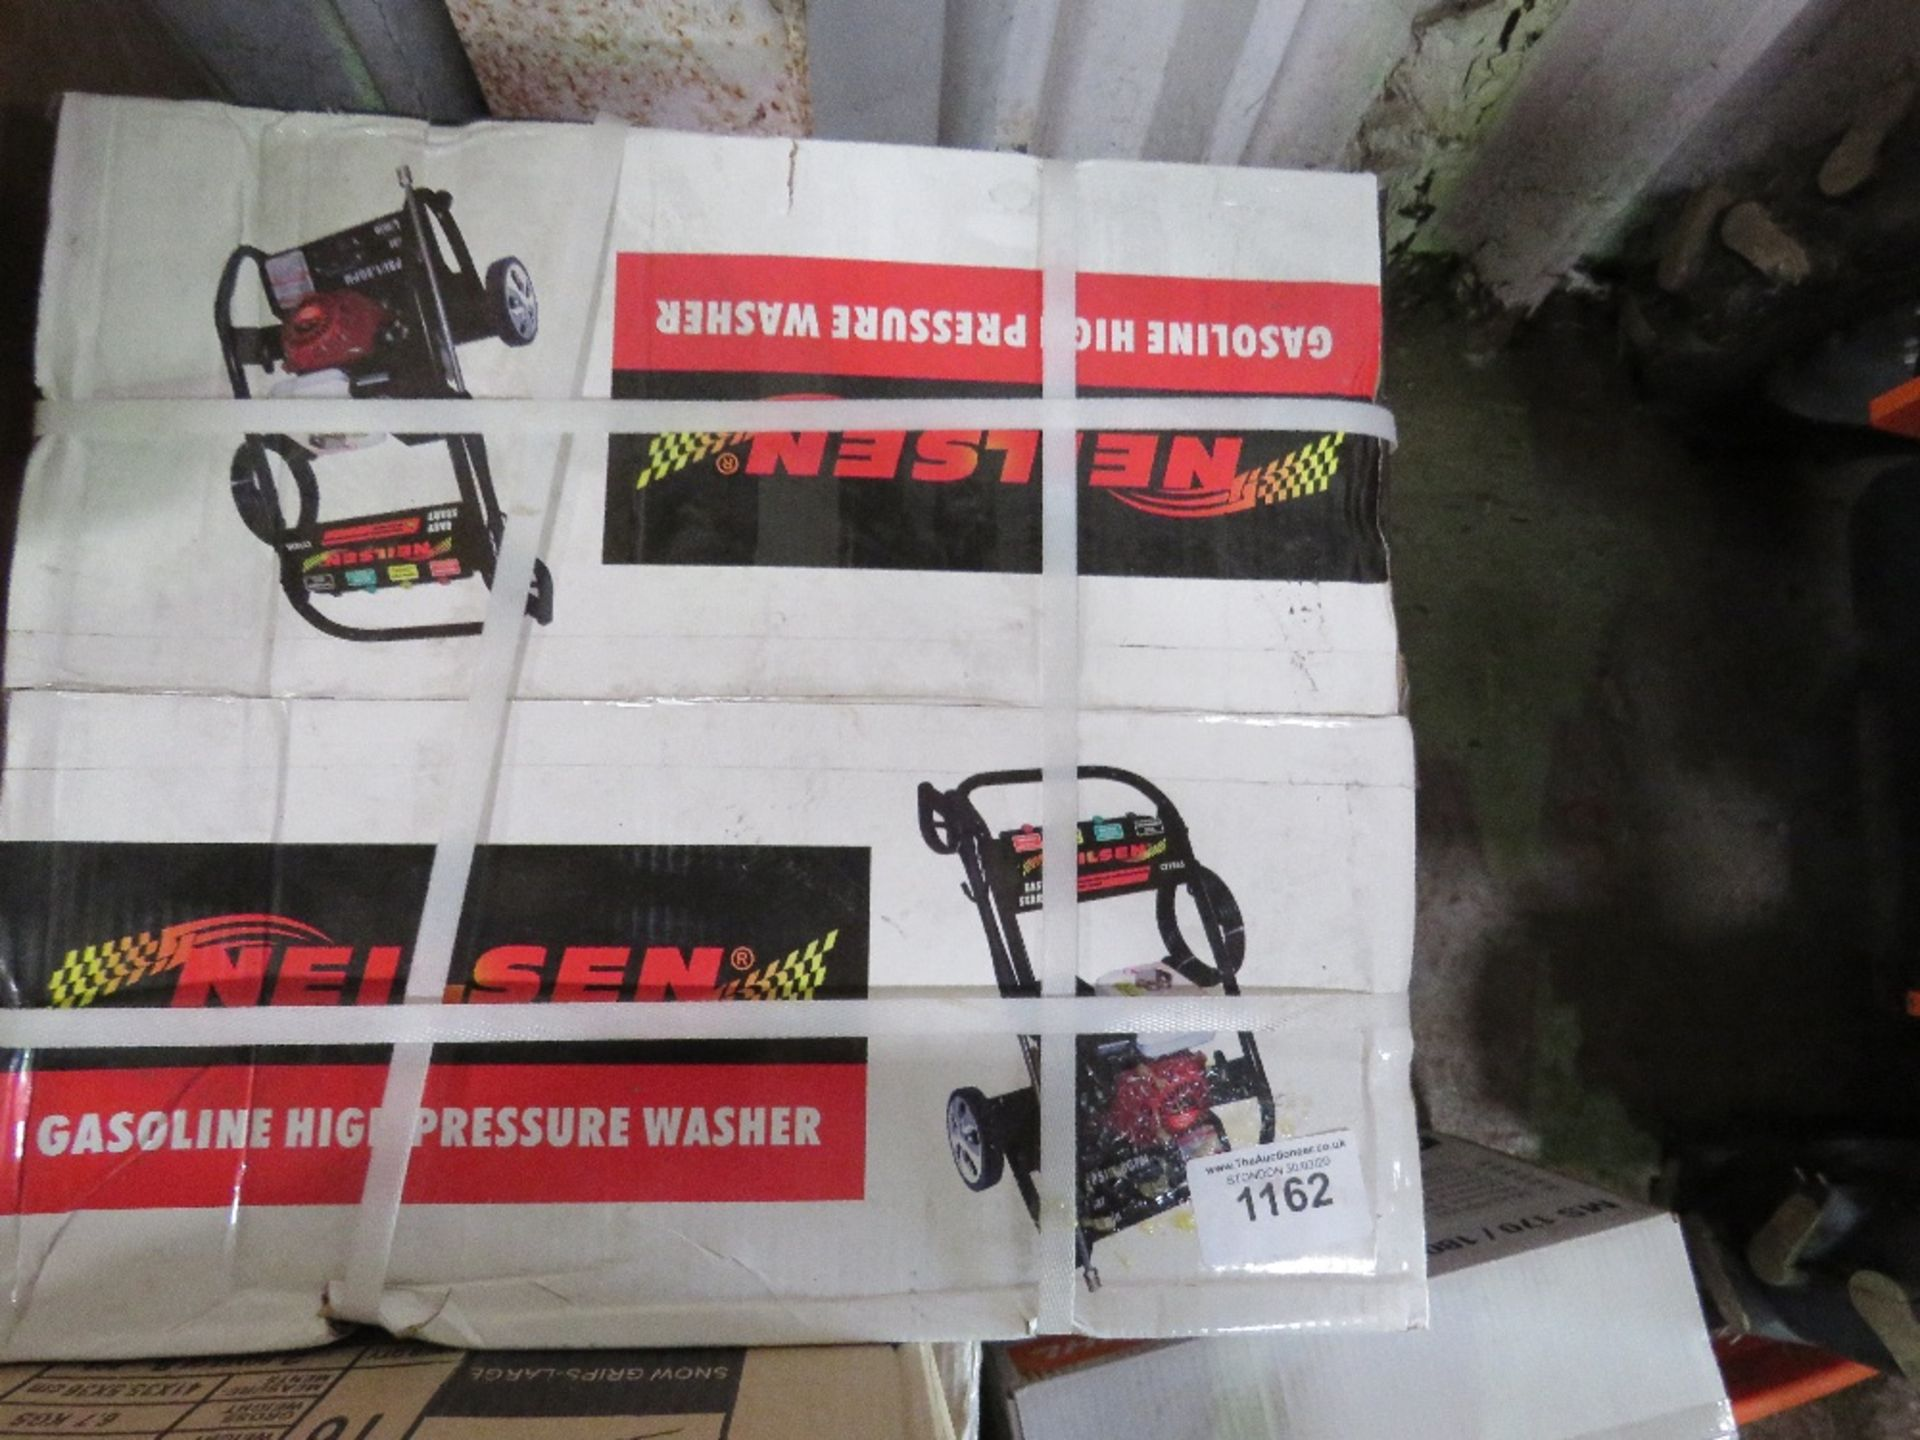 Lot 1162 - NIELSEN PETROL ENGINED POWER WASHER, BOXED